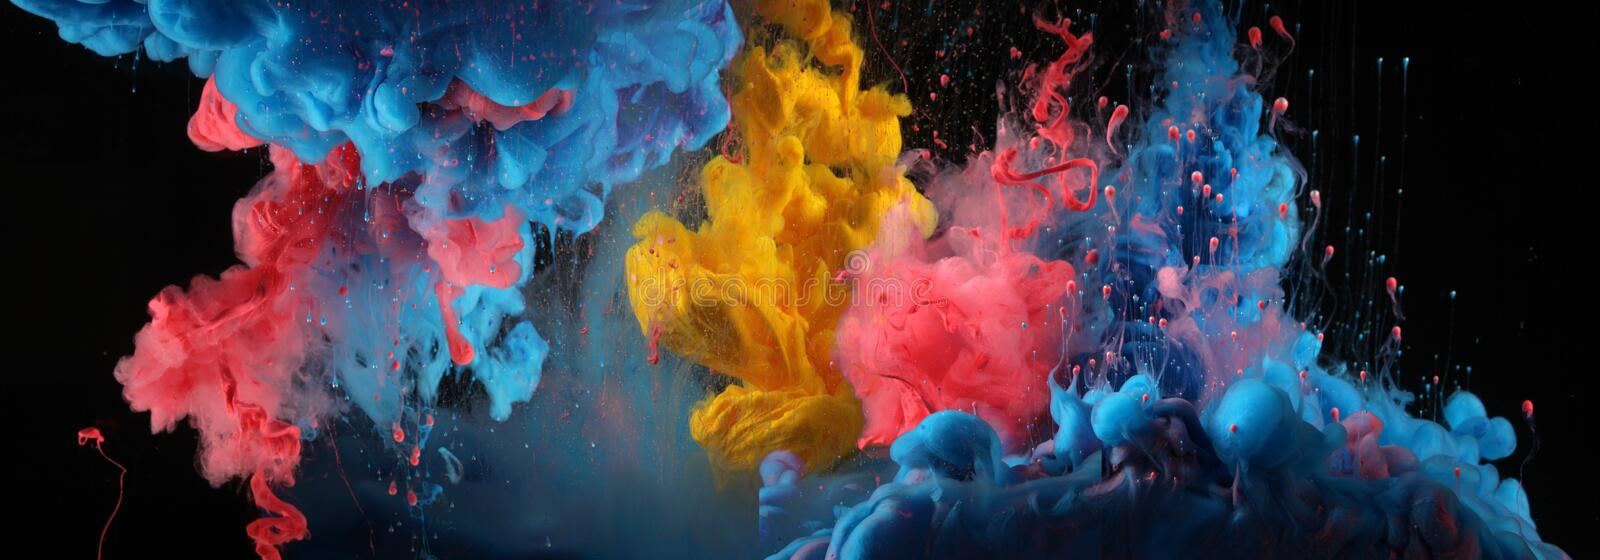 Acrylic blue and red colors in water. Ink blot. Abstract black background royalty free stock photos